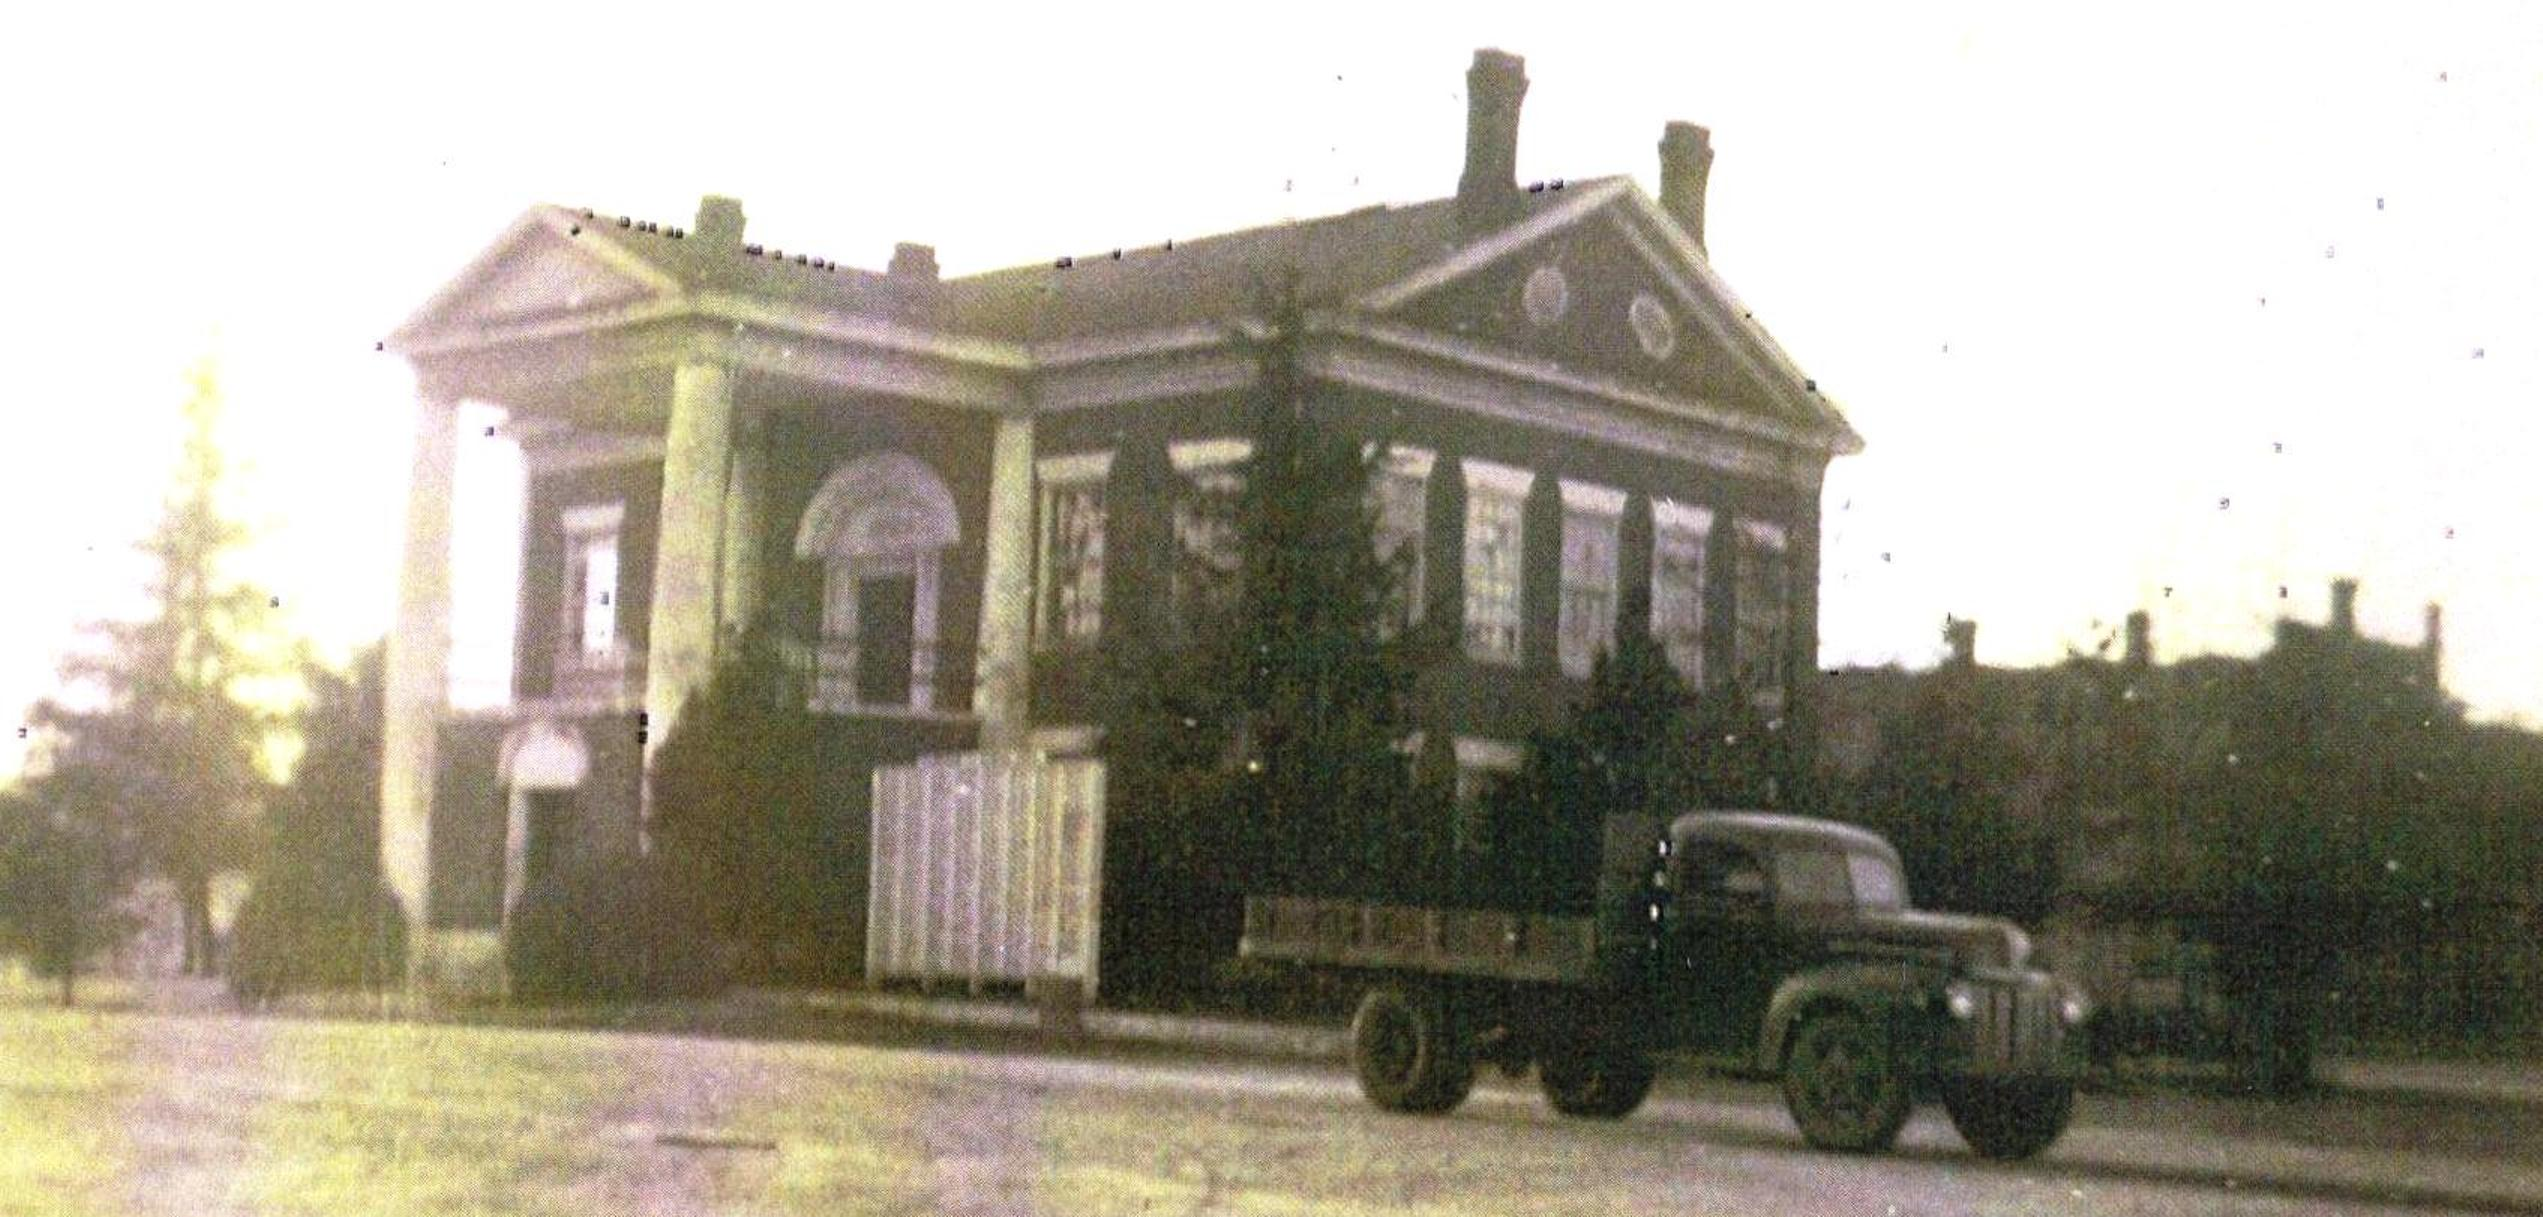 1940s Courthouse Photo 2